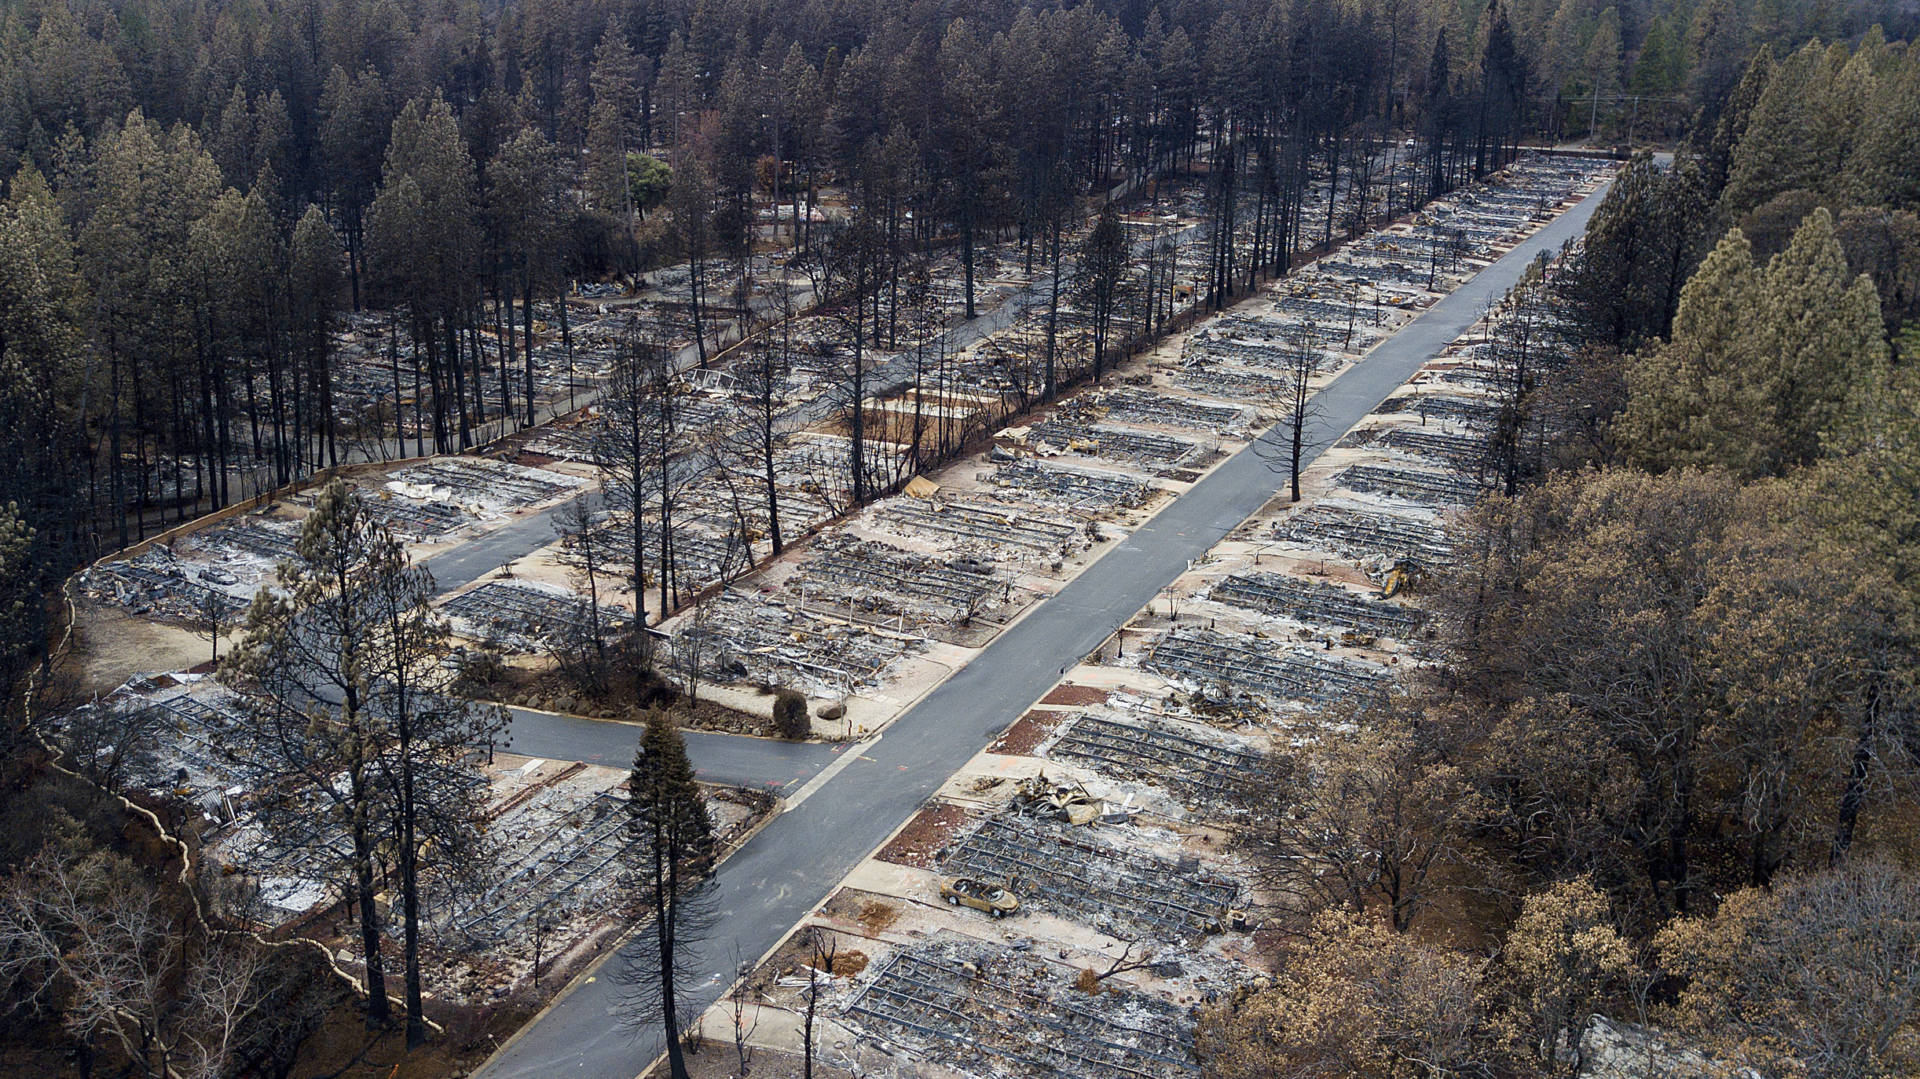 Homes leveled by the November Camp Fire line the Ridgewood Mobile Home Park retirement community in Paradise. Noah Berger/AP